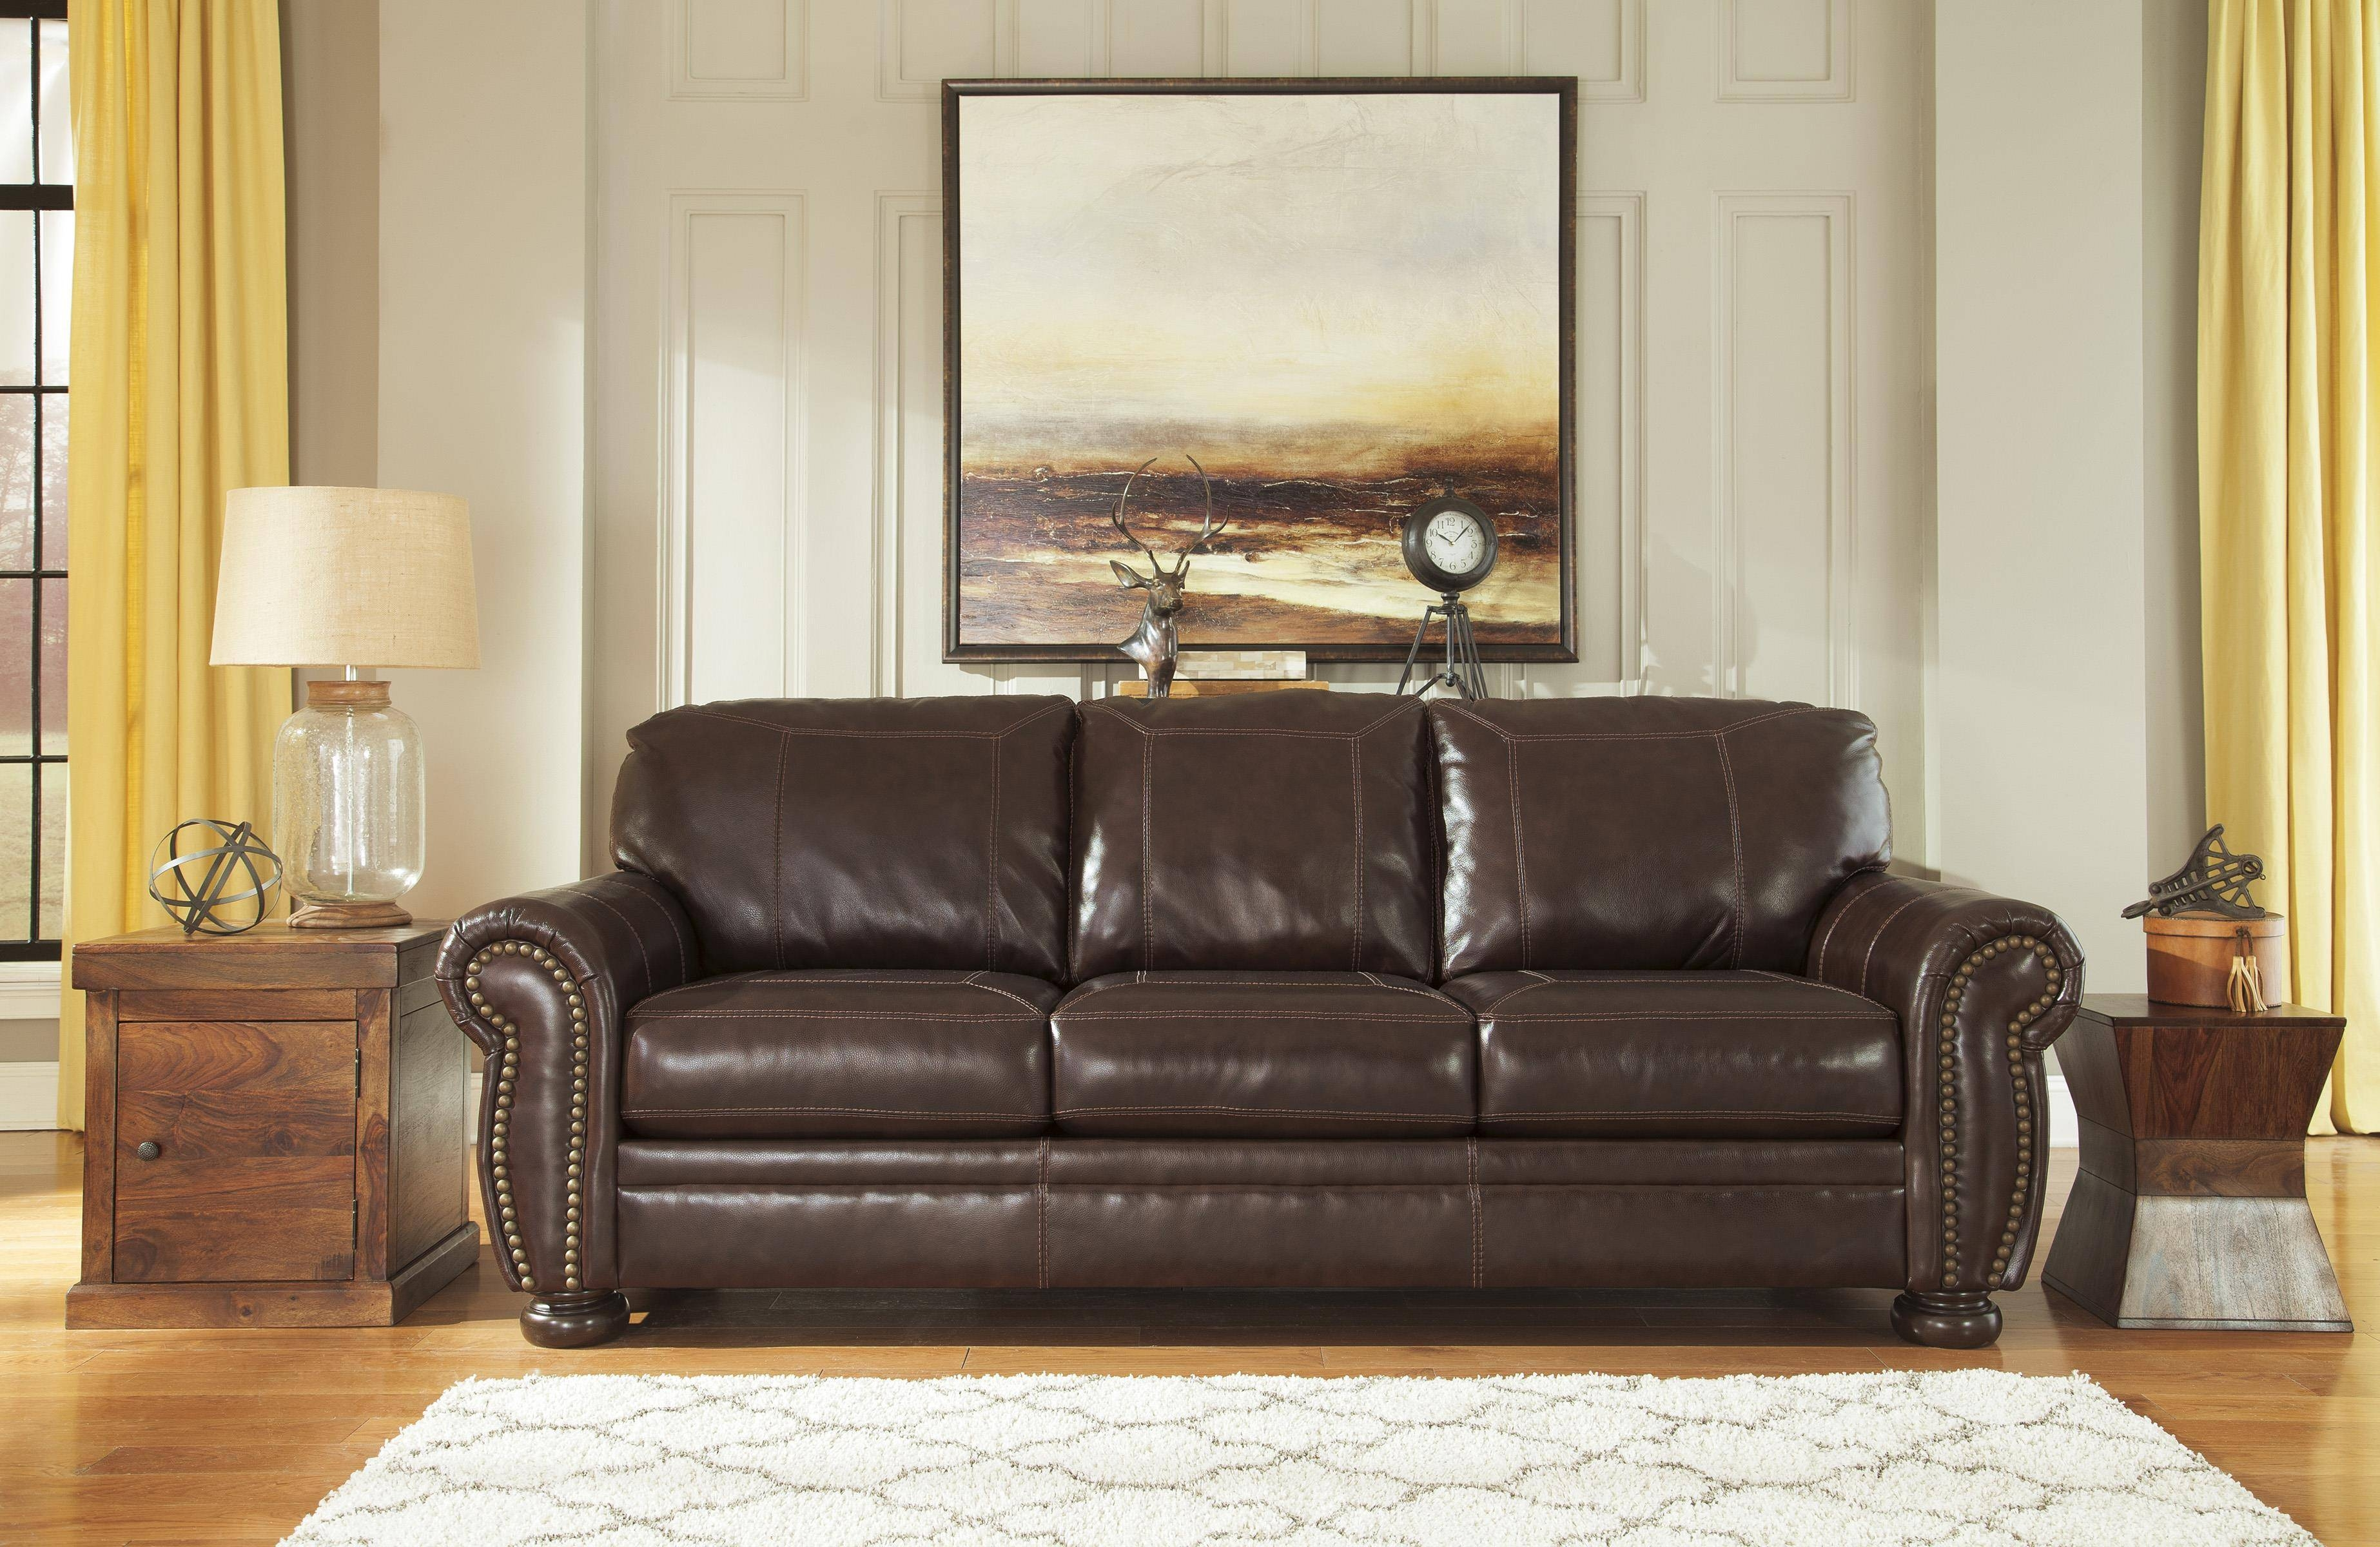 Traditional Leather Match Sofa With Rolled Arms, Nailhead Trim regarding Traditional Leather Couch (Image 20 of 30)